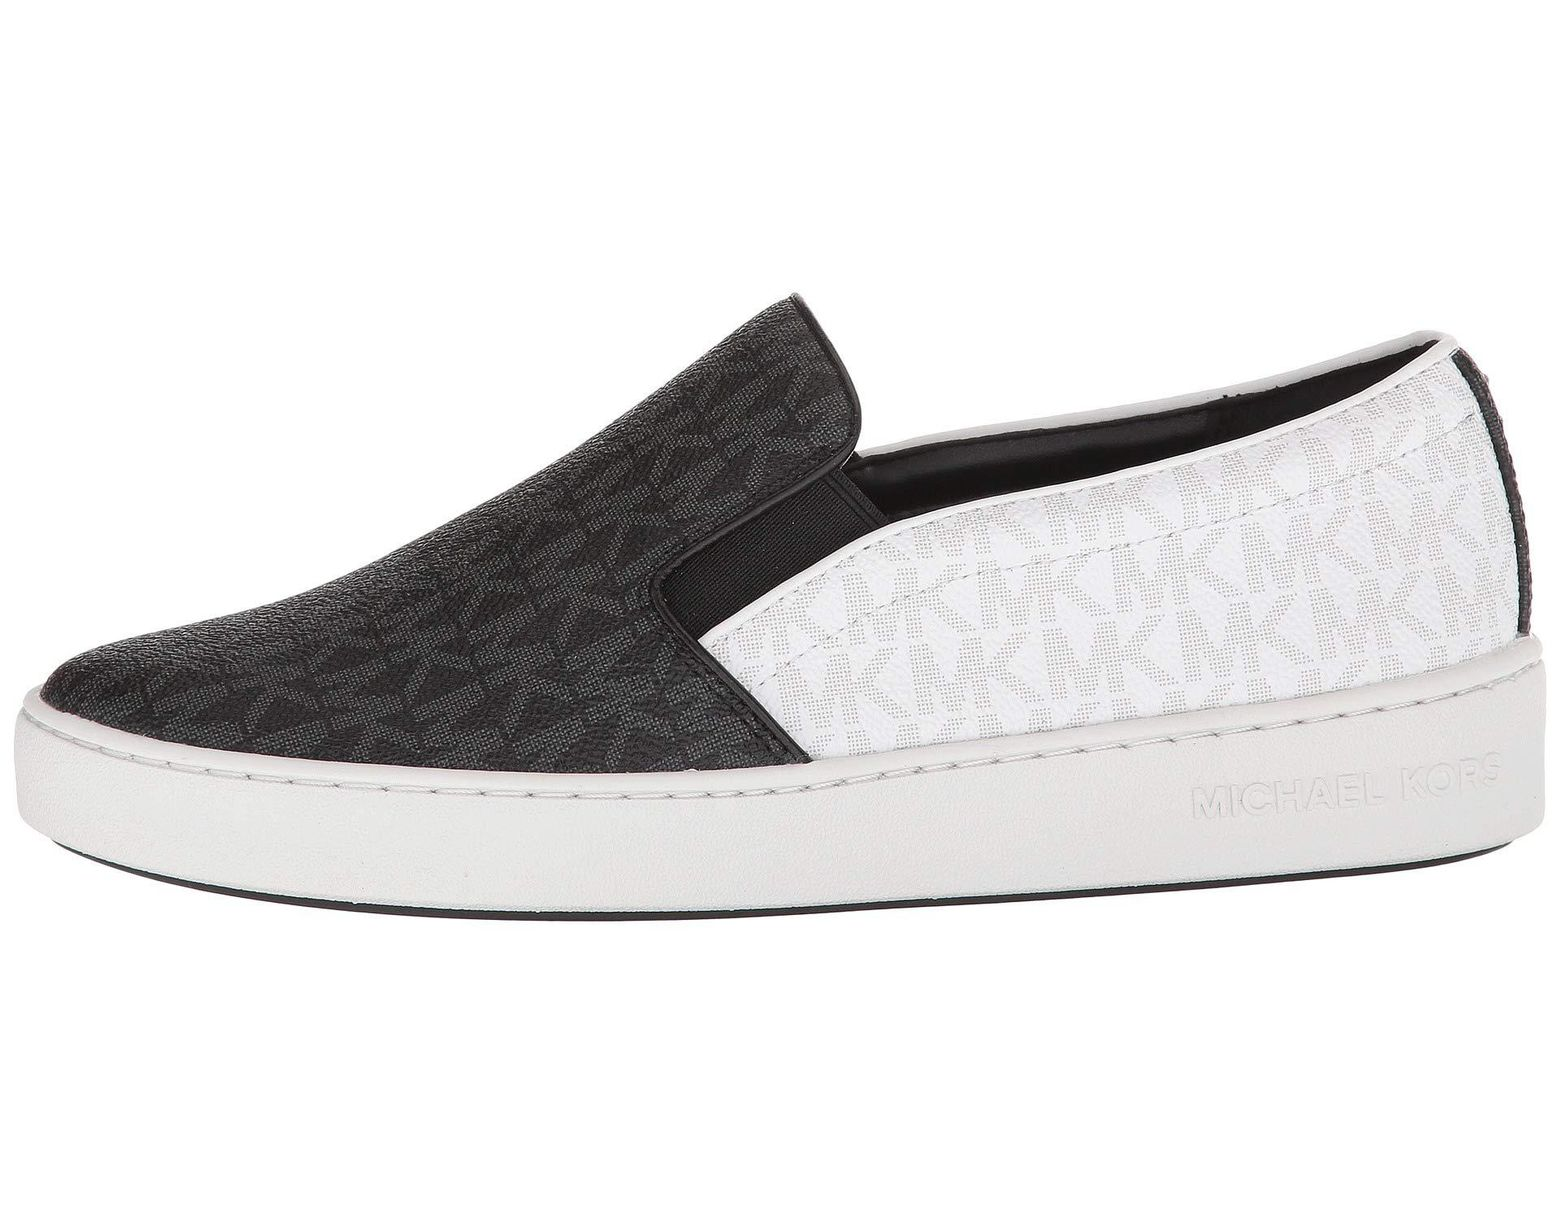 4c9988e5a9d2 Lyst - MICHAEL Michael Kors Keaton Slip-on (black Mini Mk Logo Coated Canvas suprema  Nappa Sport) Women s Slip On Shoes in Black